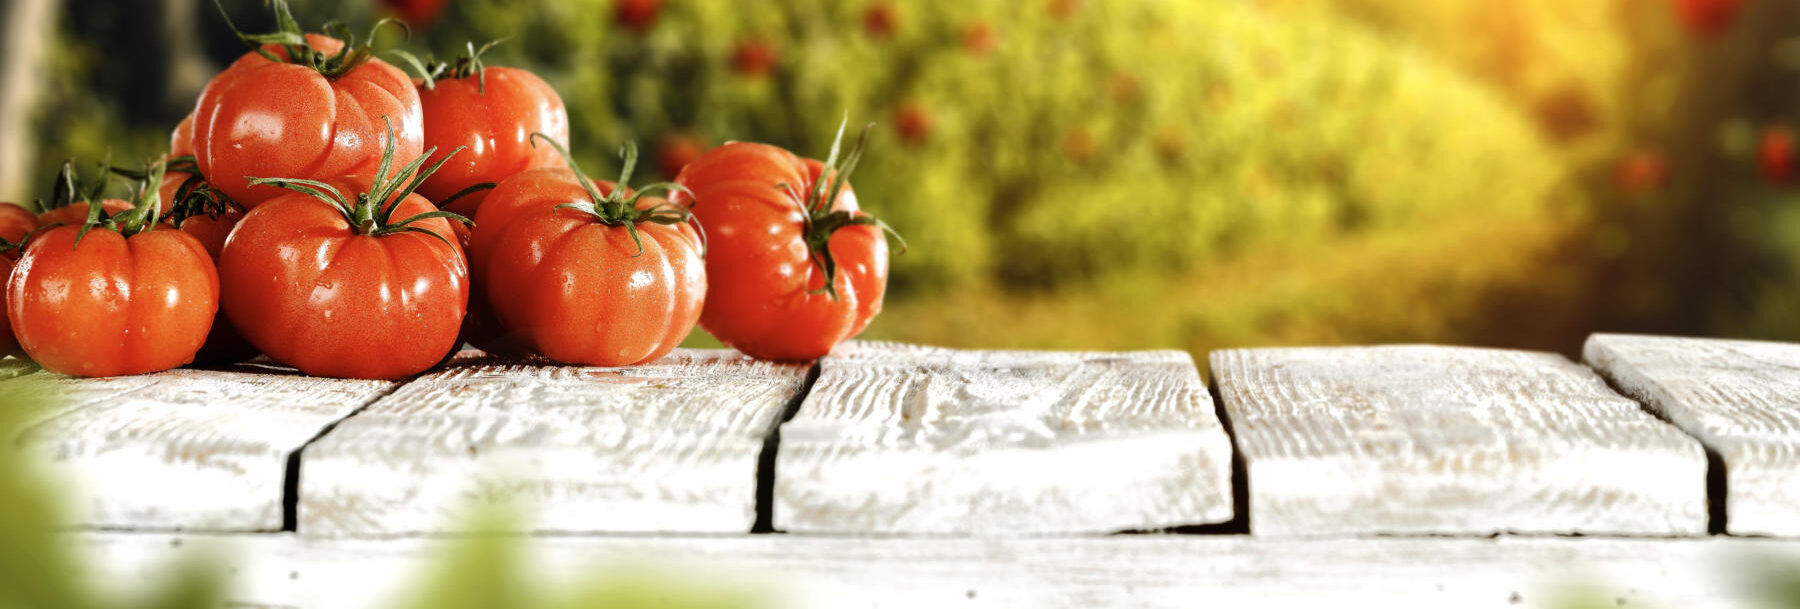 Welcome to Nicolaï Fruit - Quality fruit and vegetables in